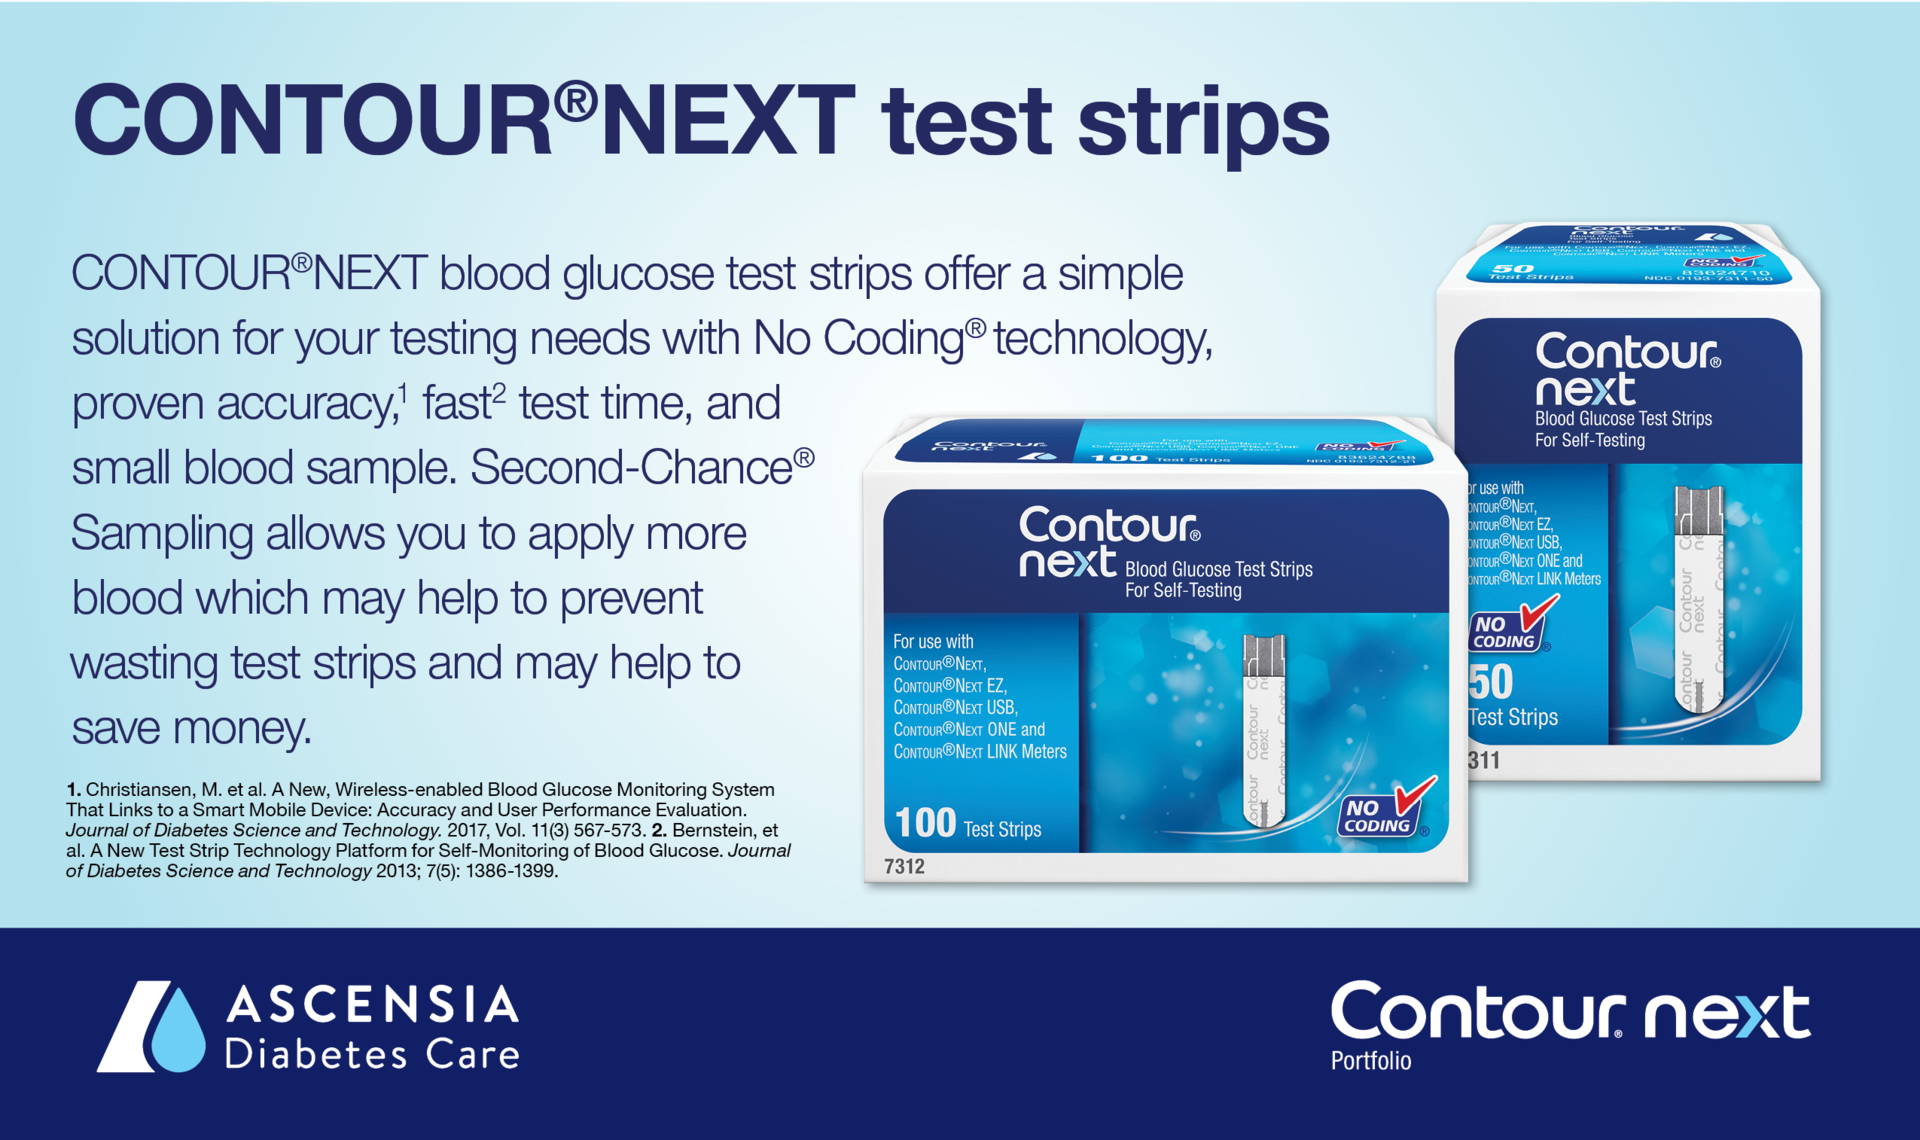 Contour Next Blood Glucose Test Strip